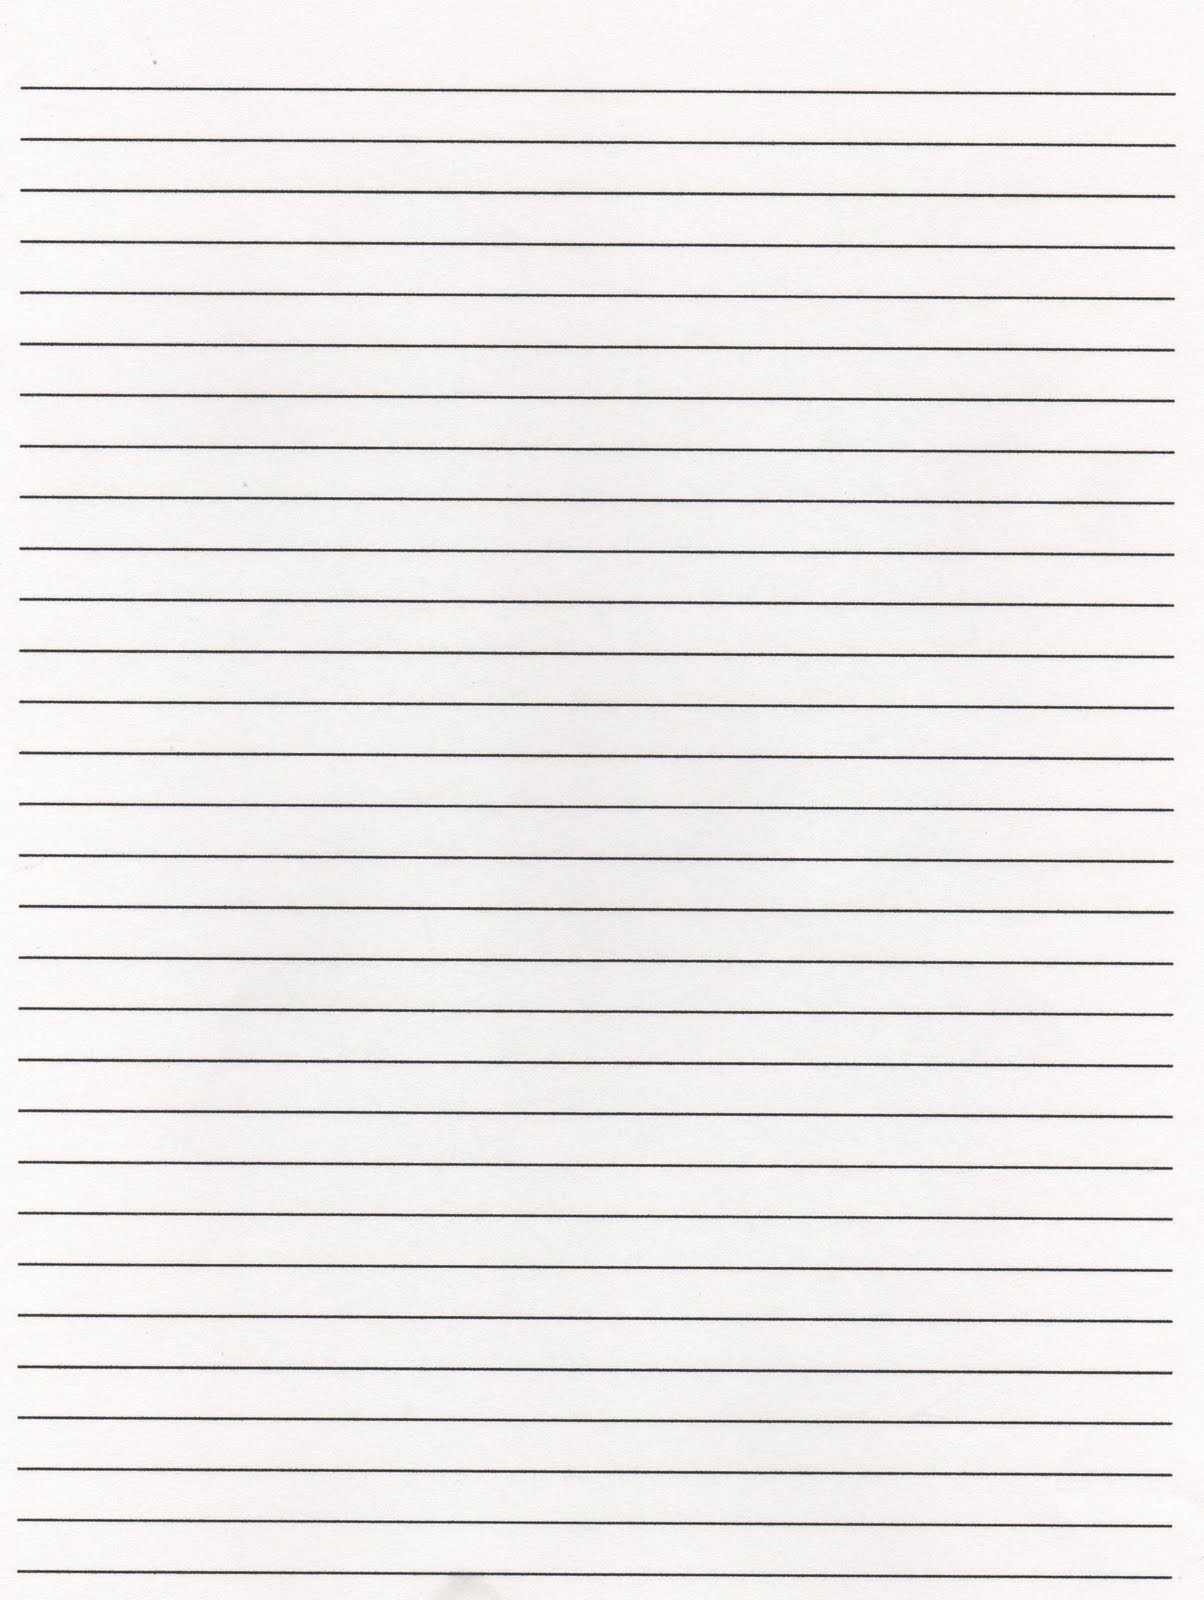 Free Printable Writing Paper With Lines And Border